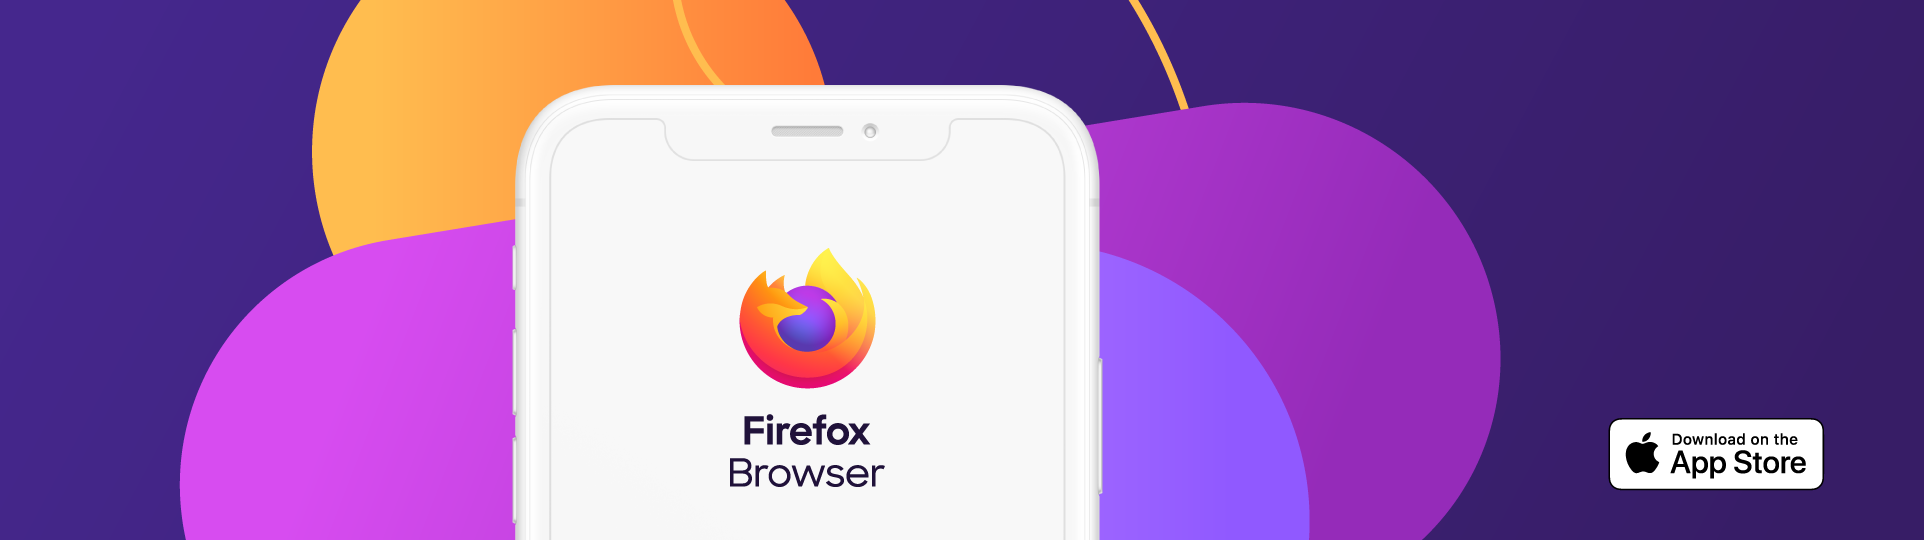 Get Firefox for iOS devices